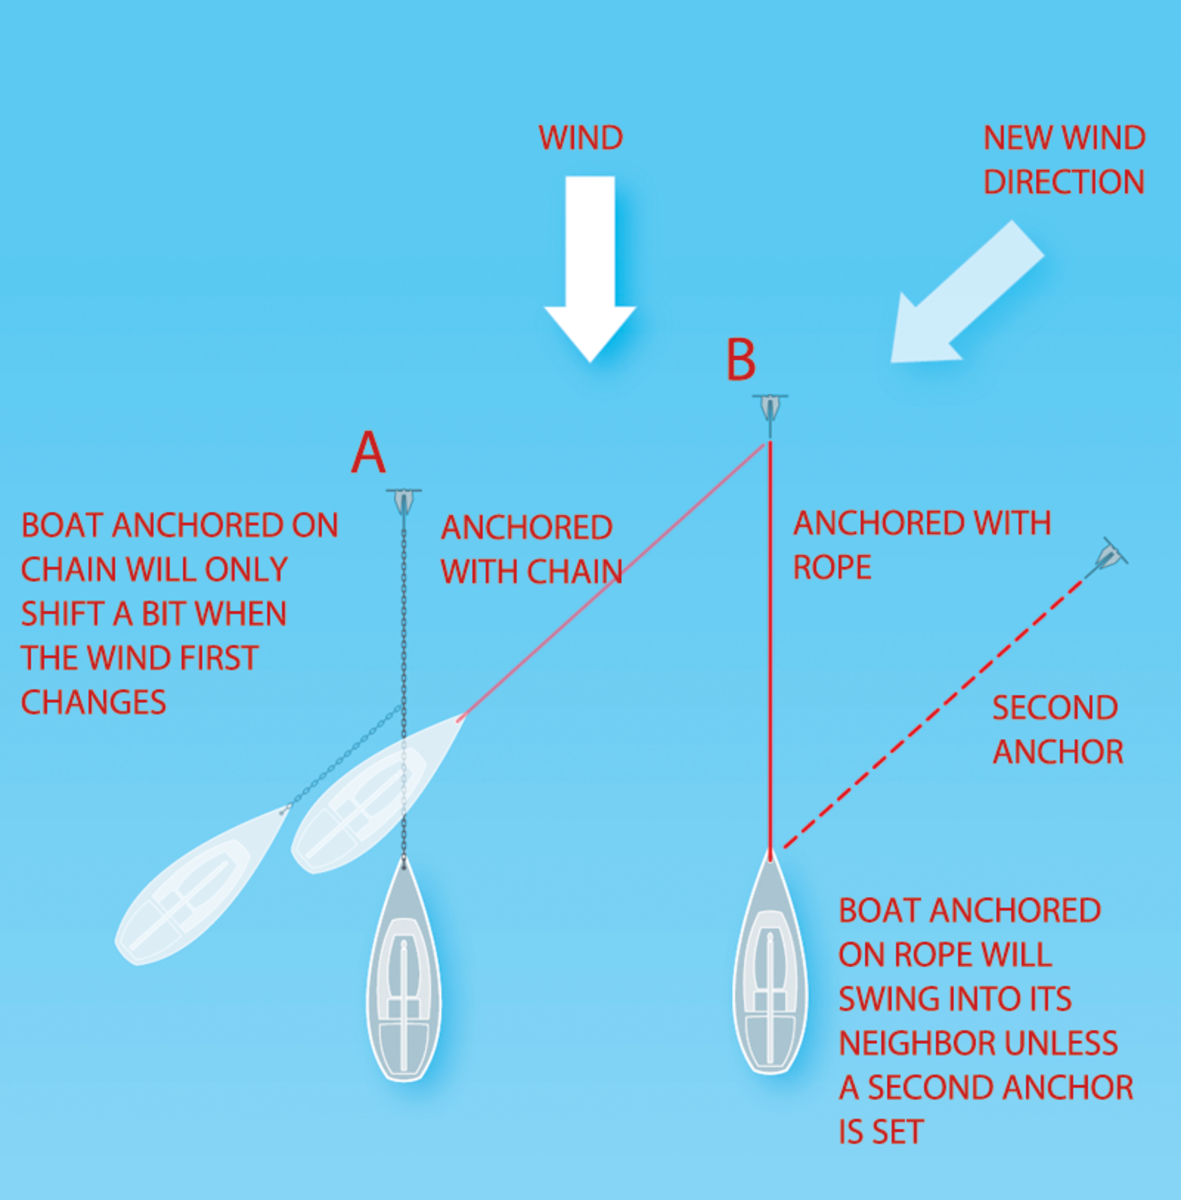 Boats anchored on different types of rode will behave differently when the wind shifts